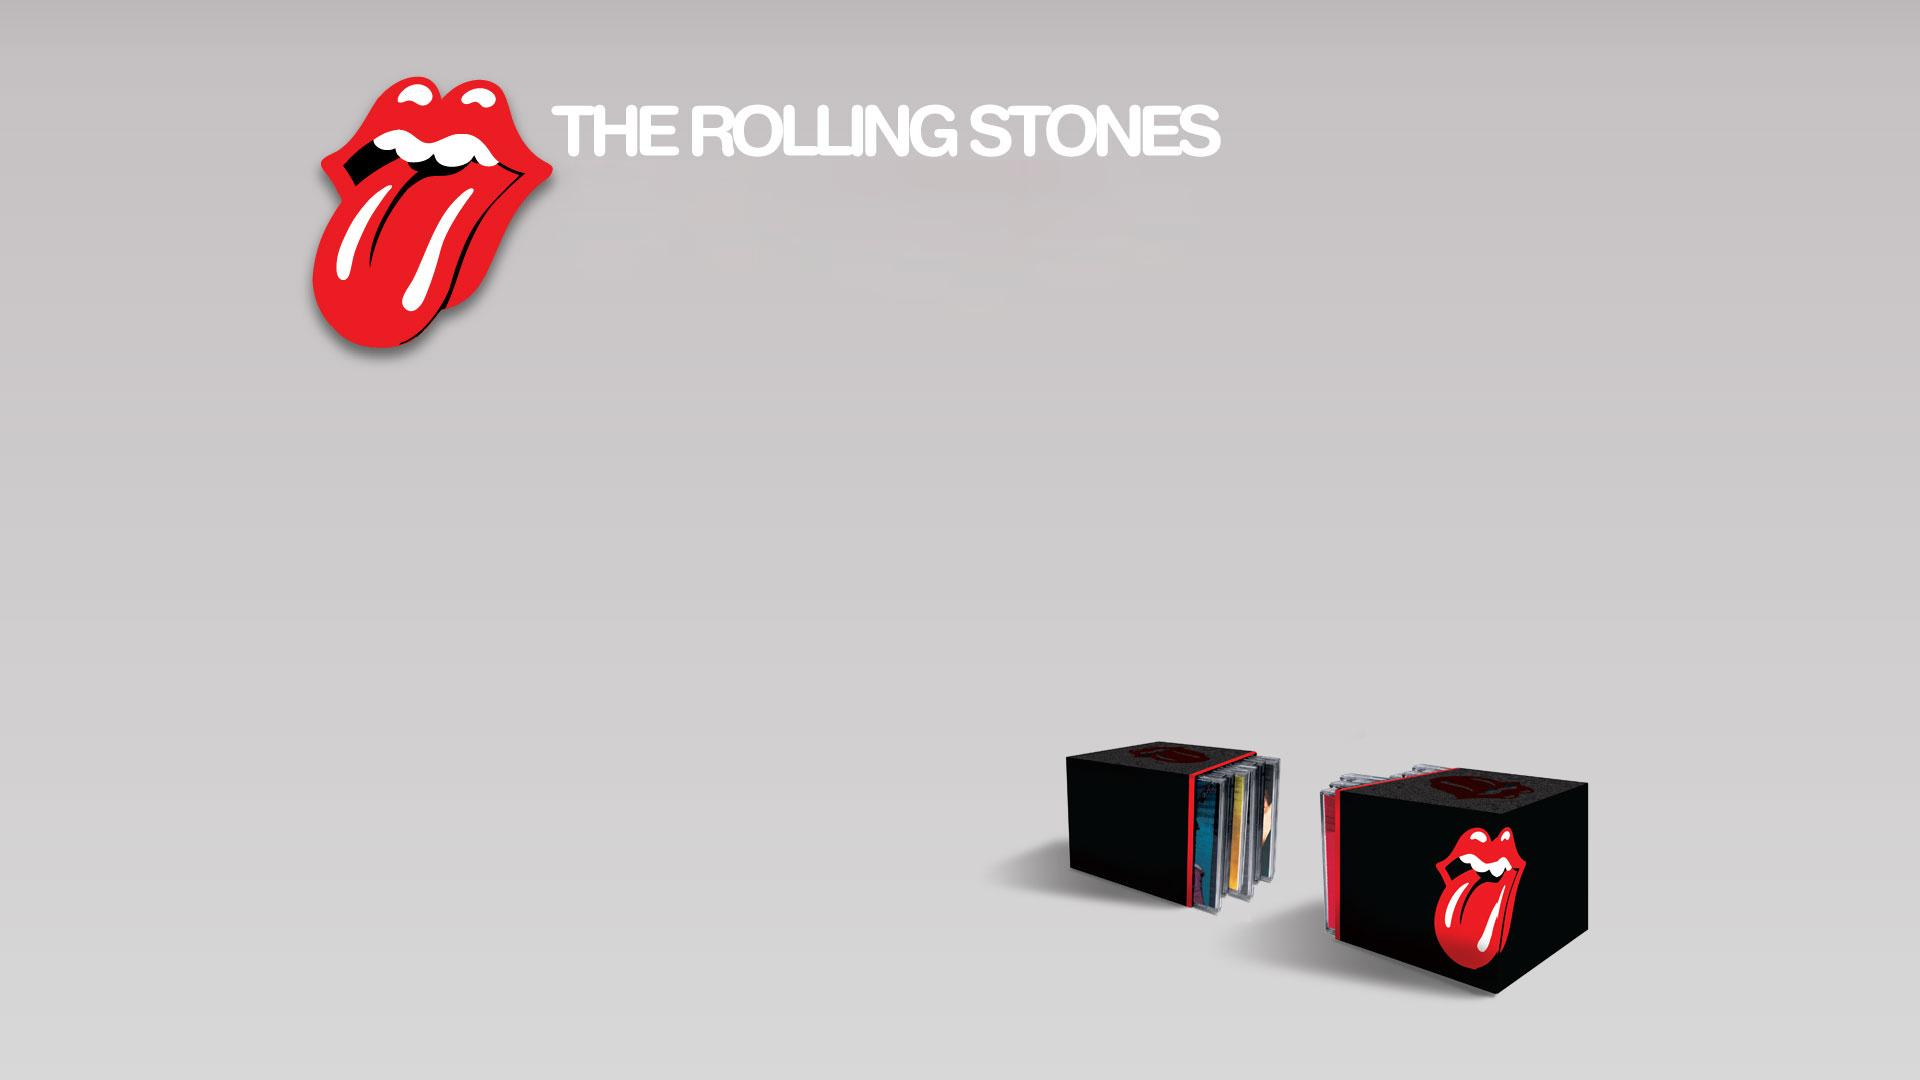 The Rolling Stones Background